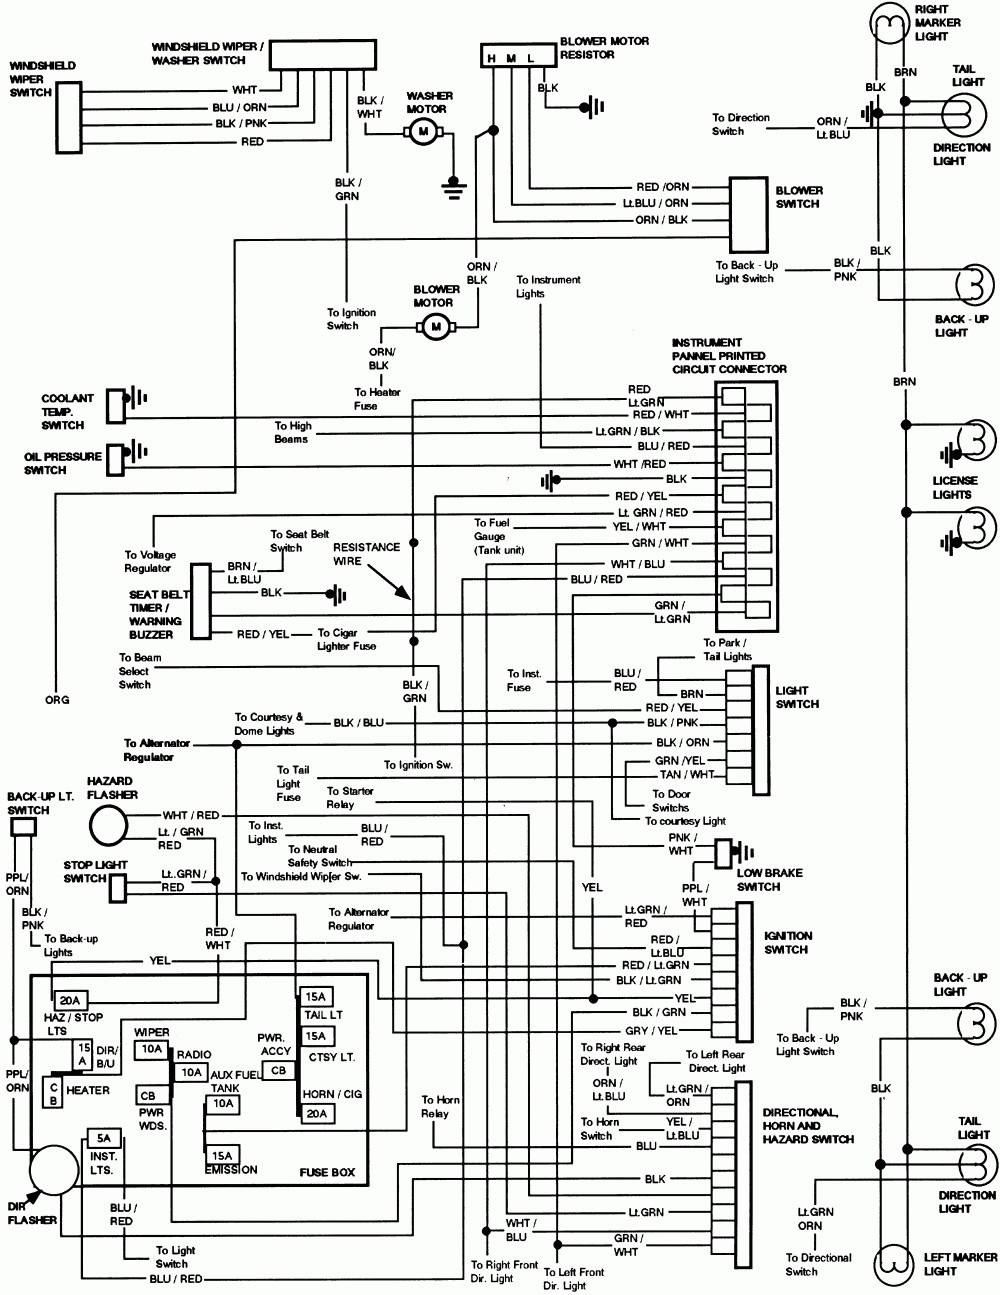 medium resolution of 1986 ford f 150 fuel system diagram simple wiring schema 1992 ford f 150 wiring diagram 1996 ford f 150 wiring diagram